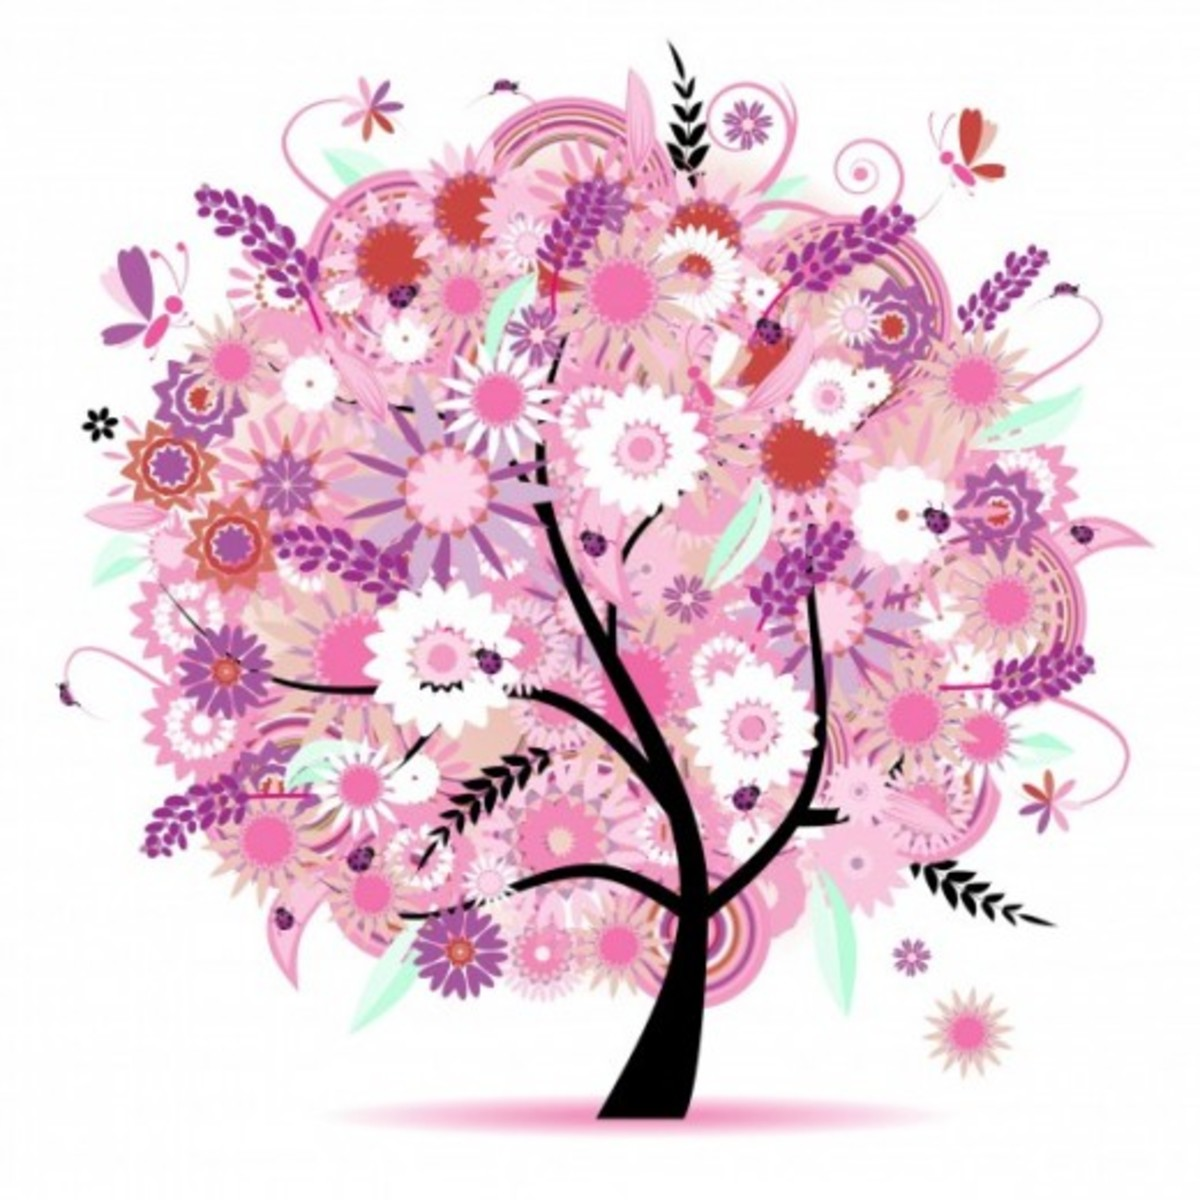 Tree with Flowering Blossoms